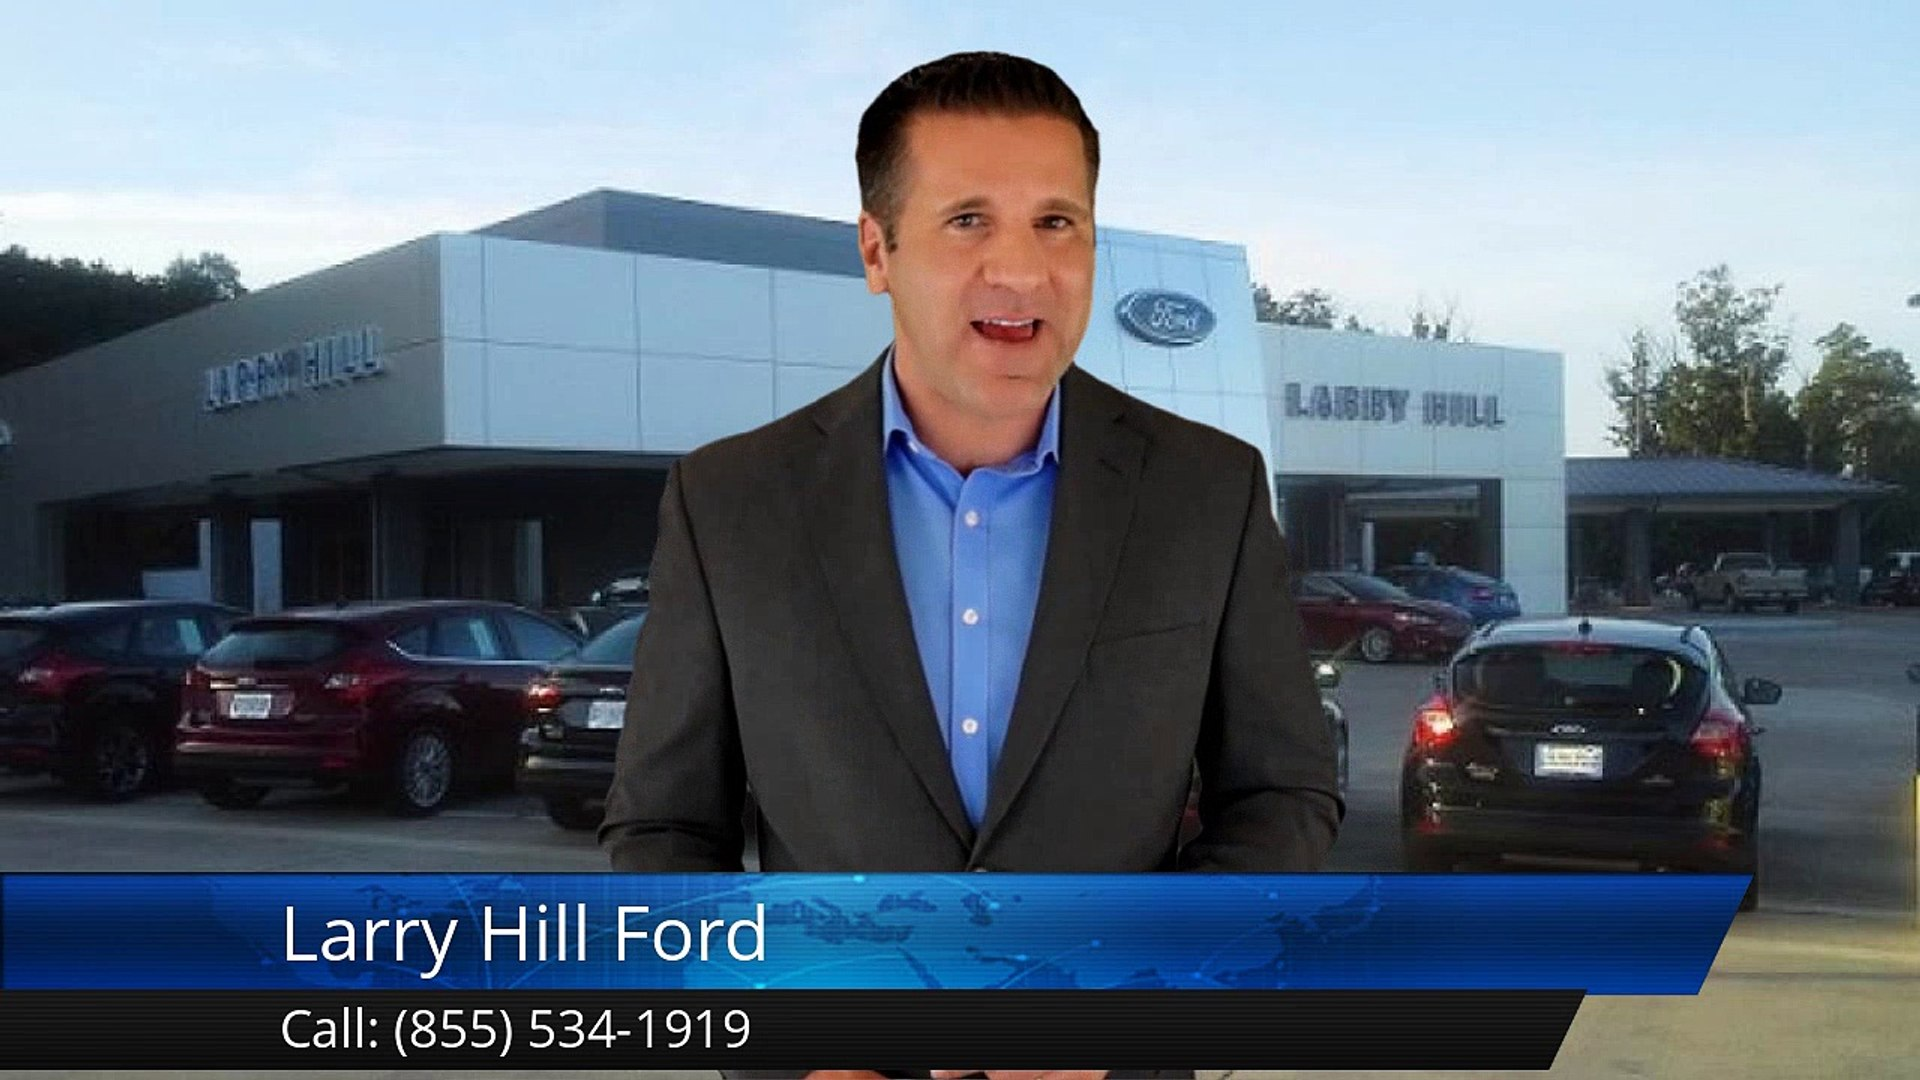 14 Ford F-14 for sale Cleveland TN Buy New F-14 | Larry Hill Ford | larry hill ford